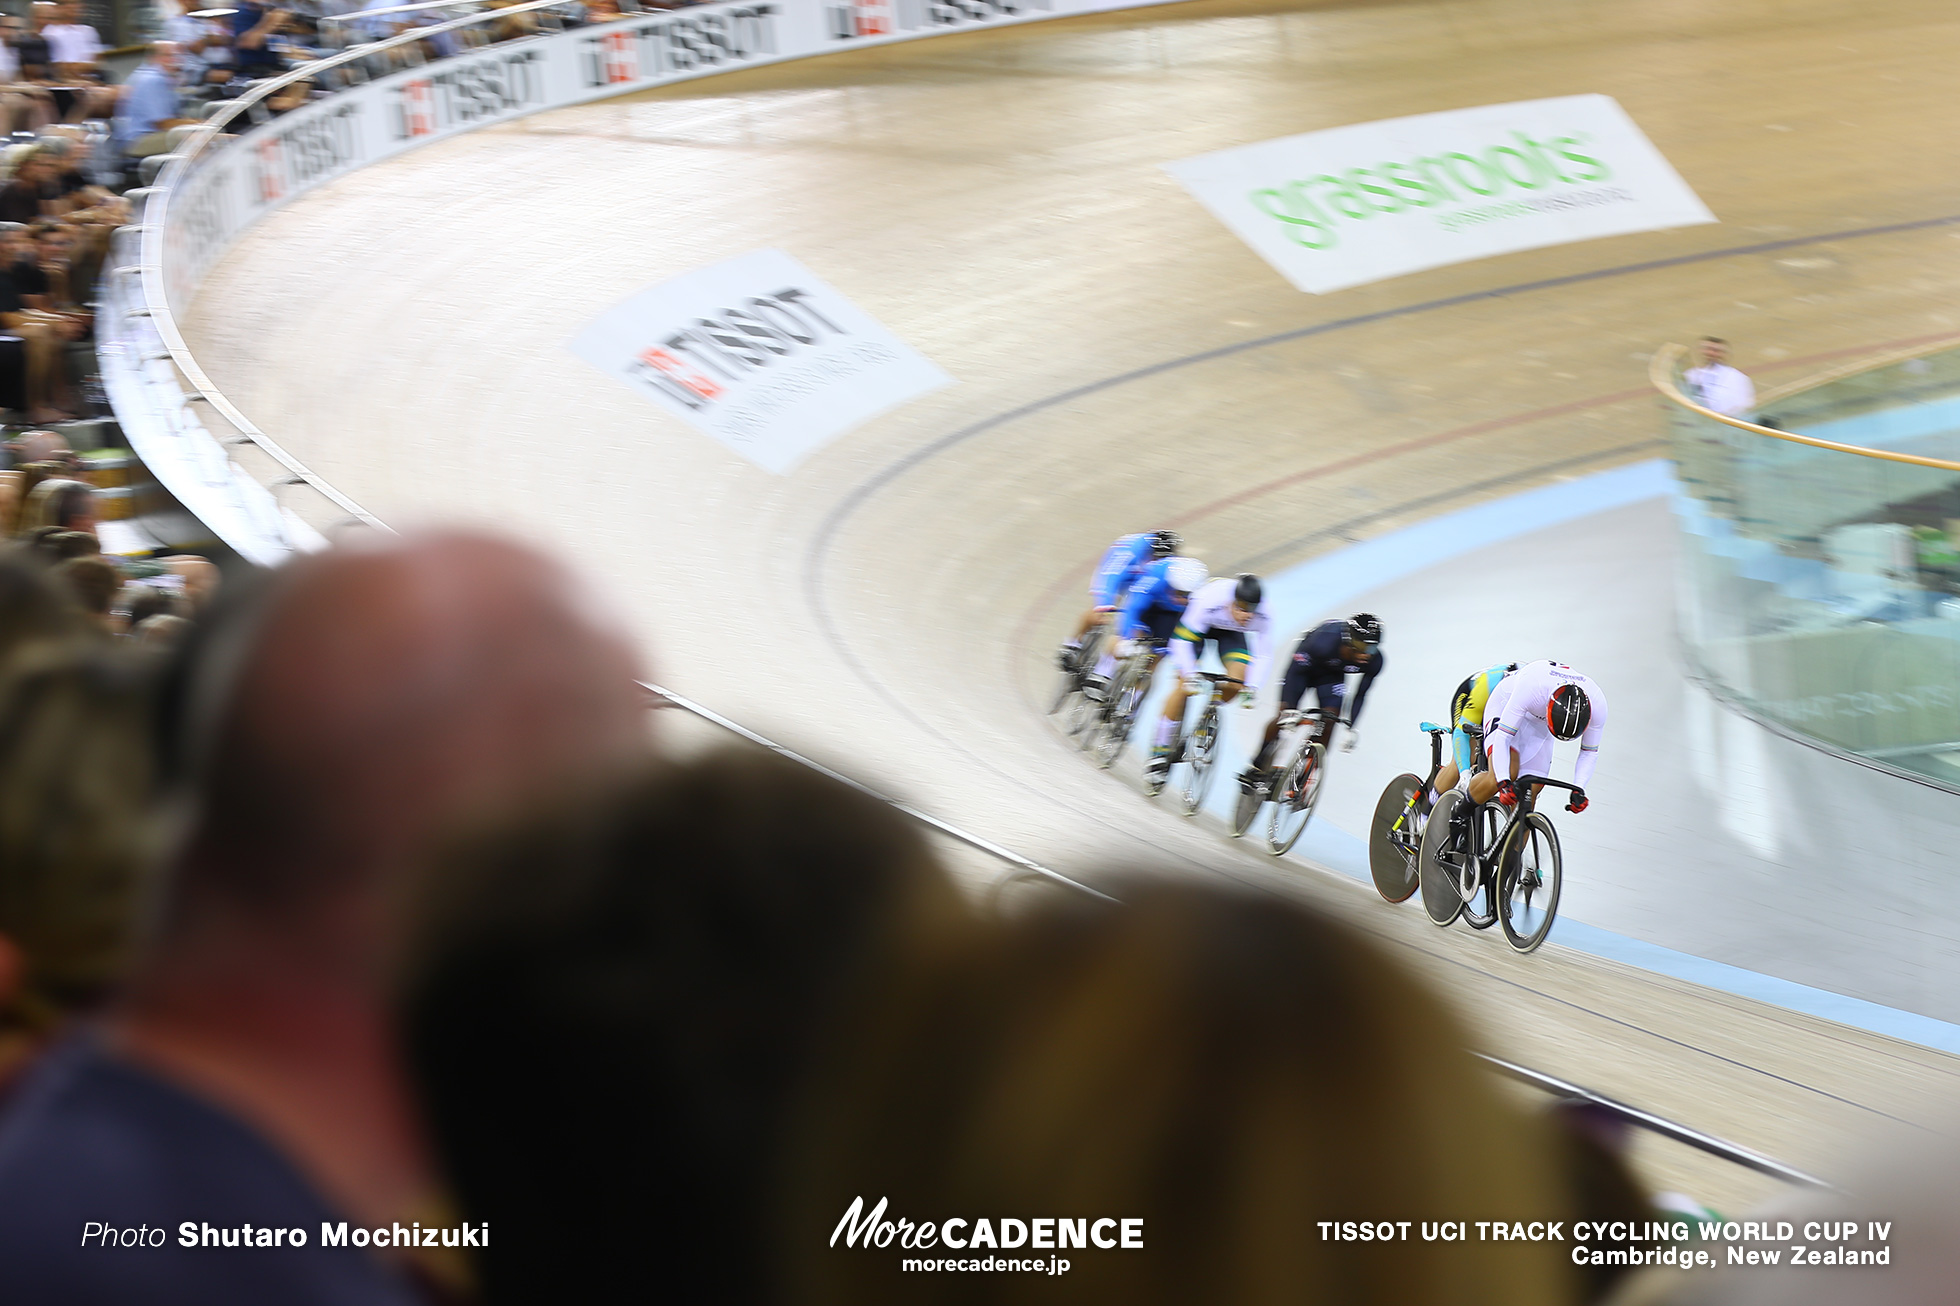 2nd Round / Men's Keirin / TISSOT UCI TRACK CYCLING WORLD CUP IV, Cambridge, New Zealand